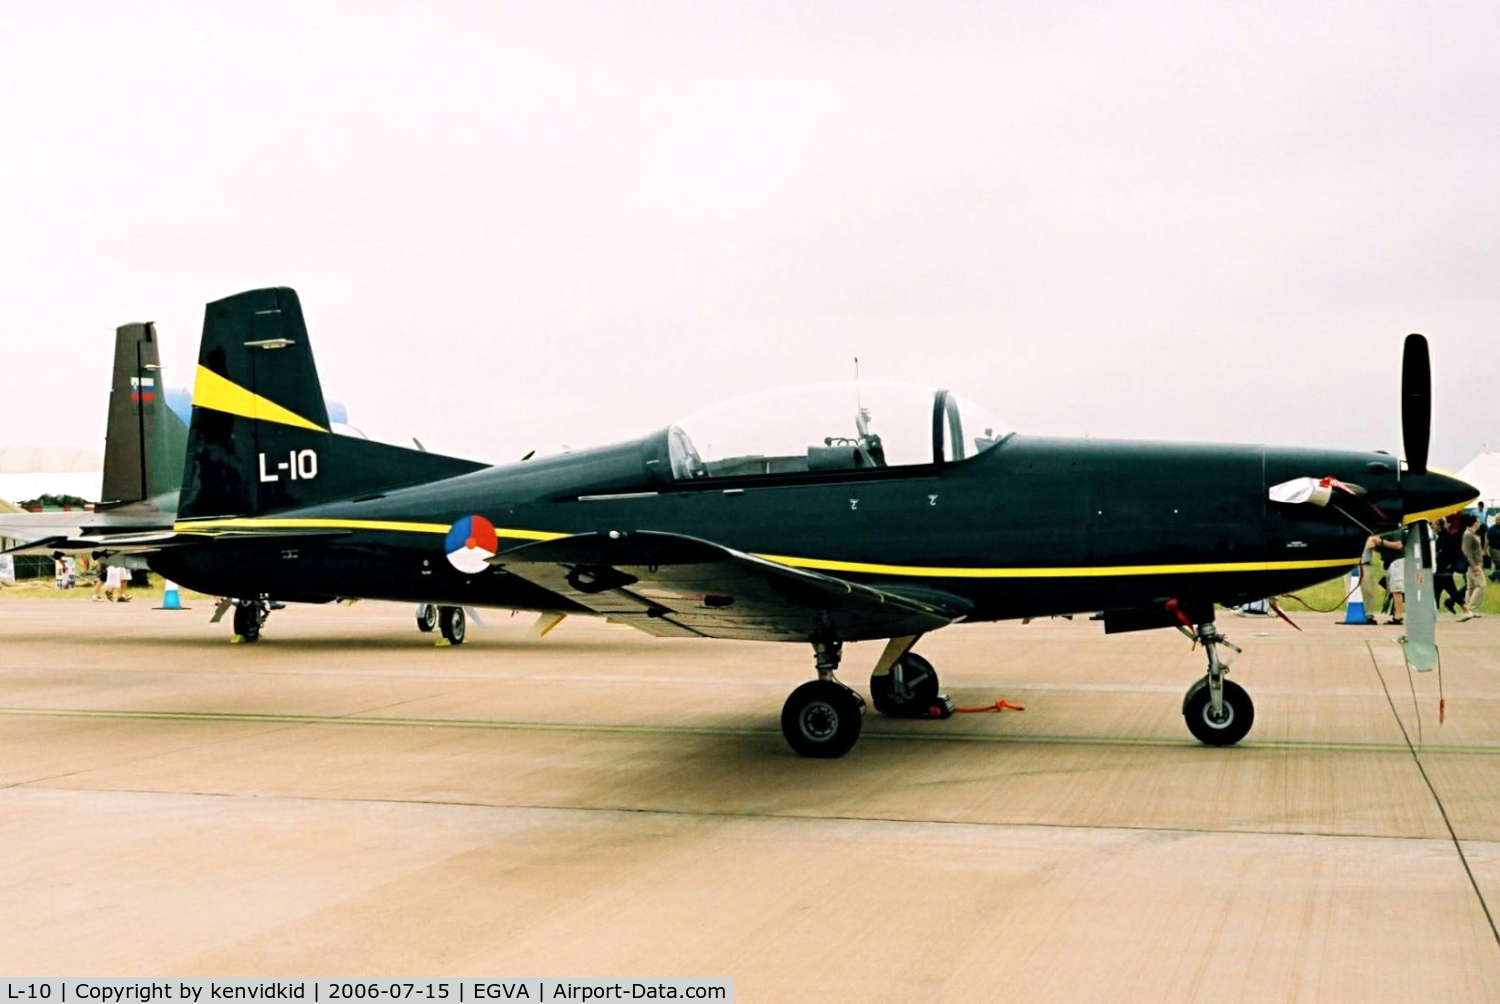 L-10, Pilatus PC-7 Turbo Trainer C/N 547, Royal Netherlands Air Force on static display at RIAT.